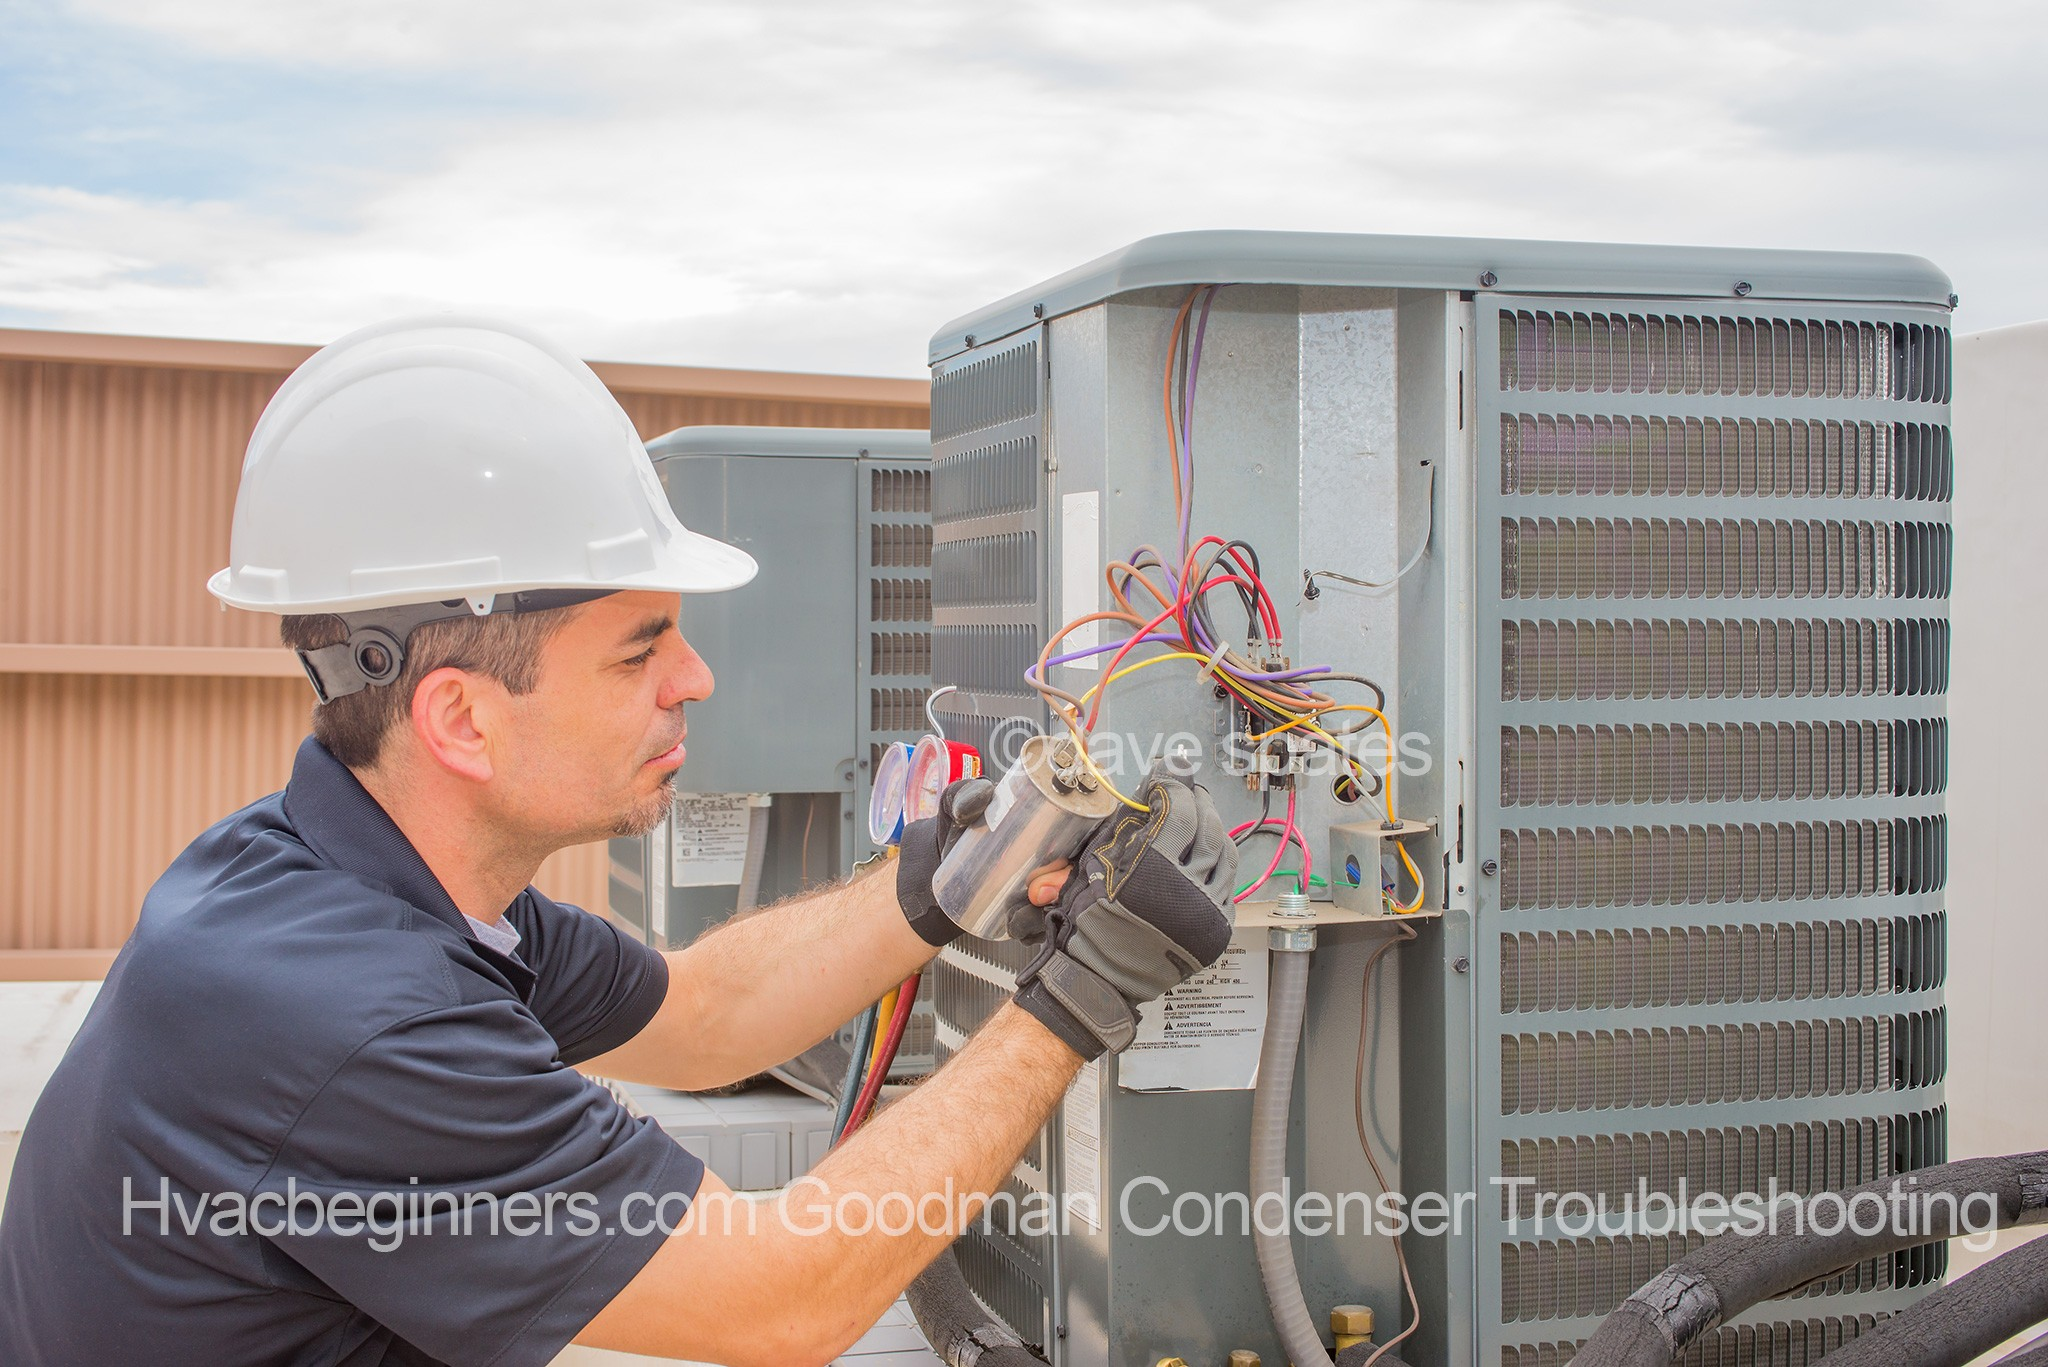 Story Time, Troubleshooting Goodman Condenser - HVAC